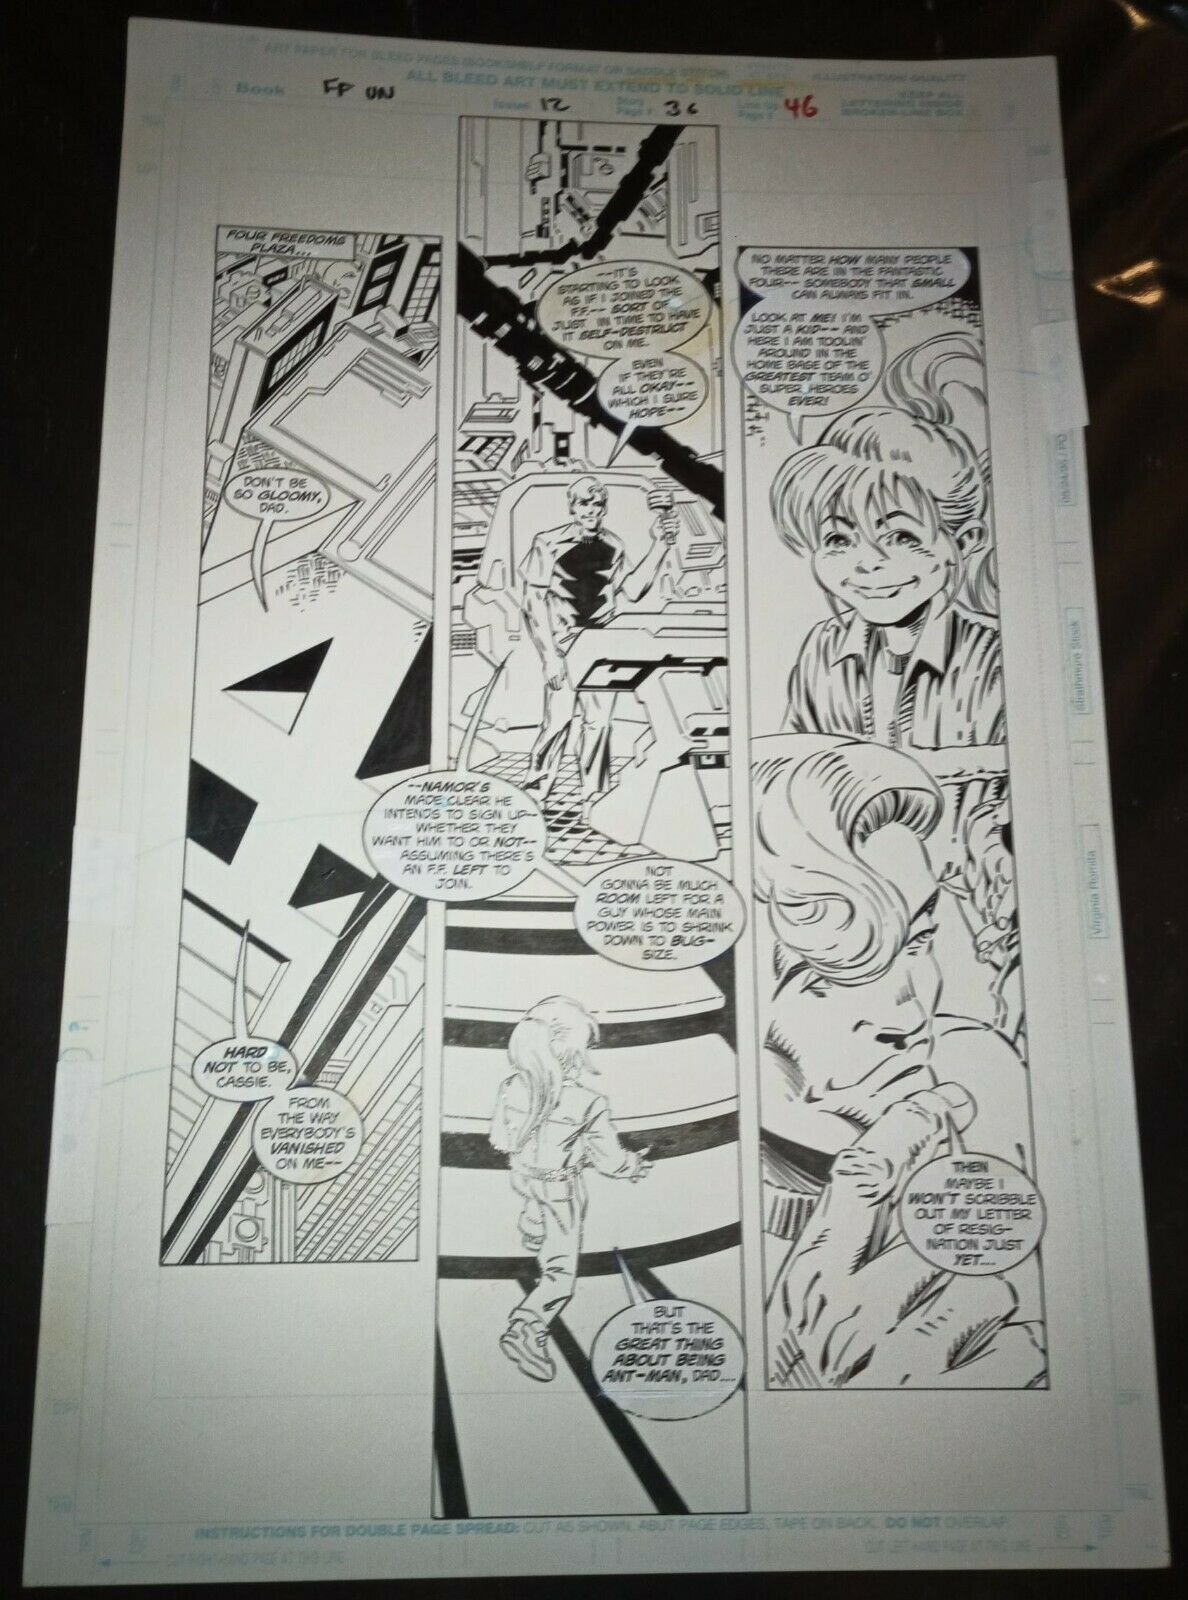 ***FANTASTIC FOUR UNLIMITED #12 Pg 36 B&W ORIGINAL TRIMPE & SIGNED BY LANNING***